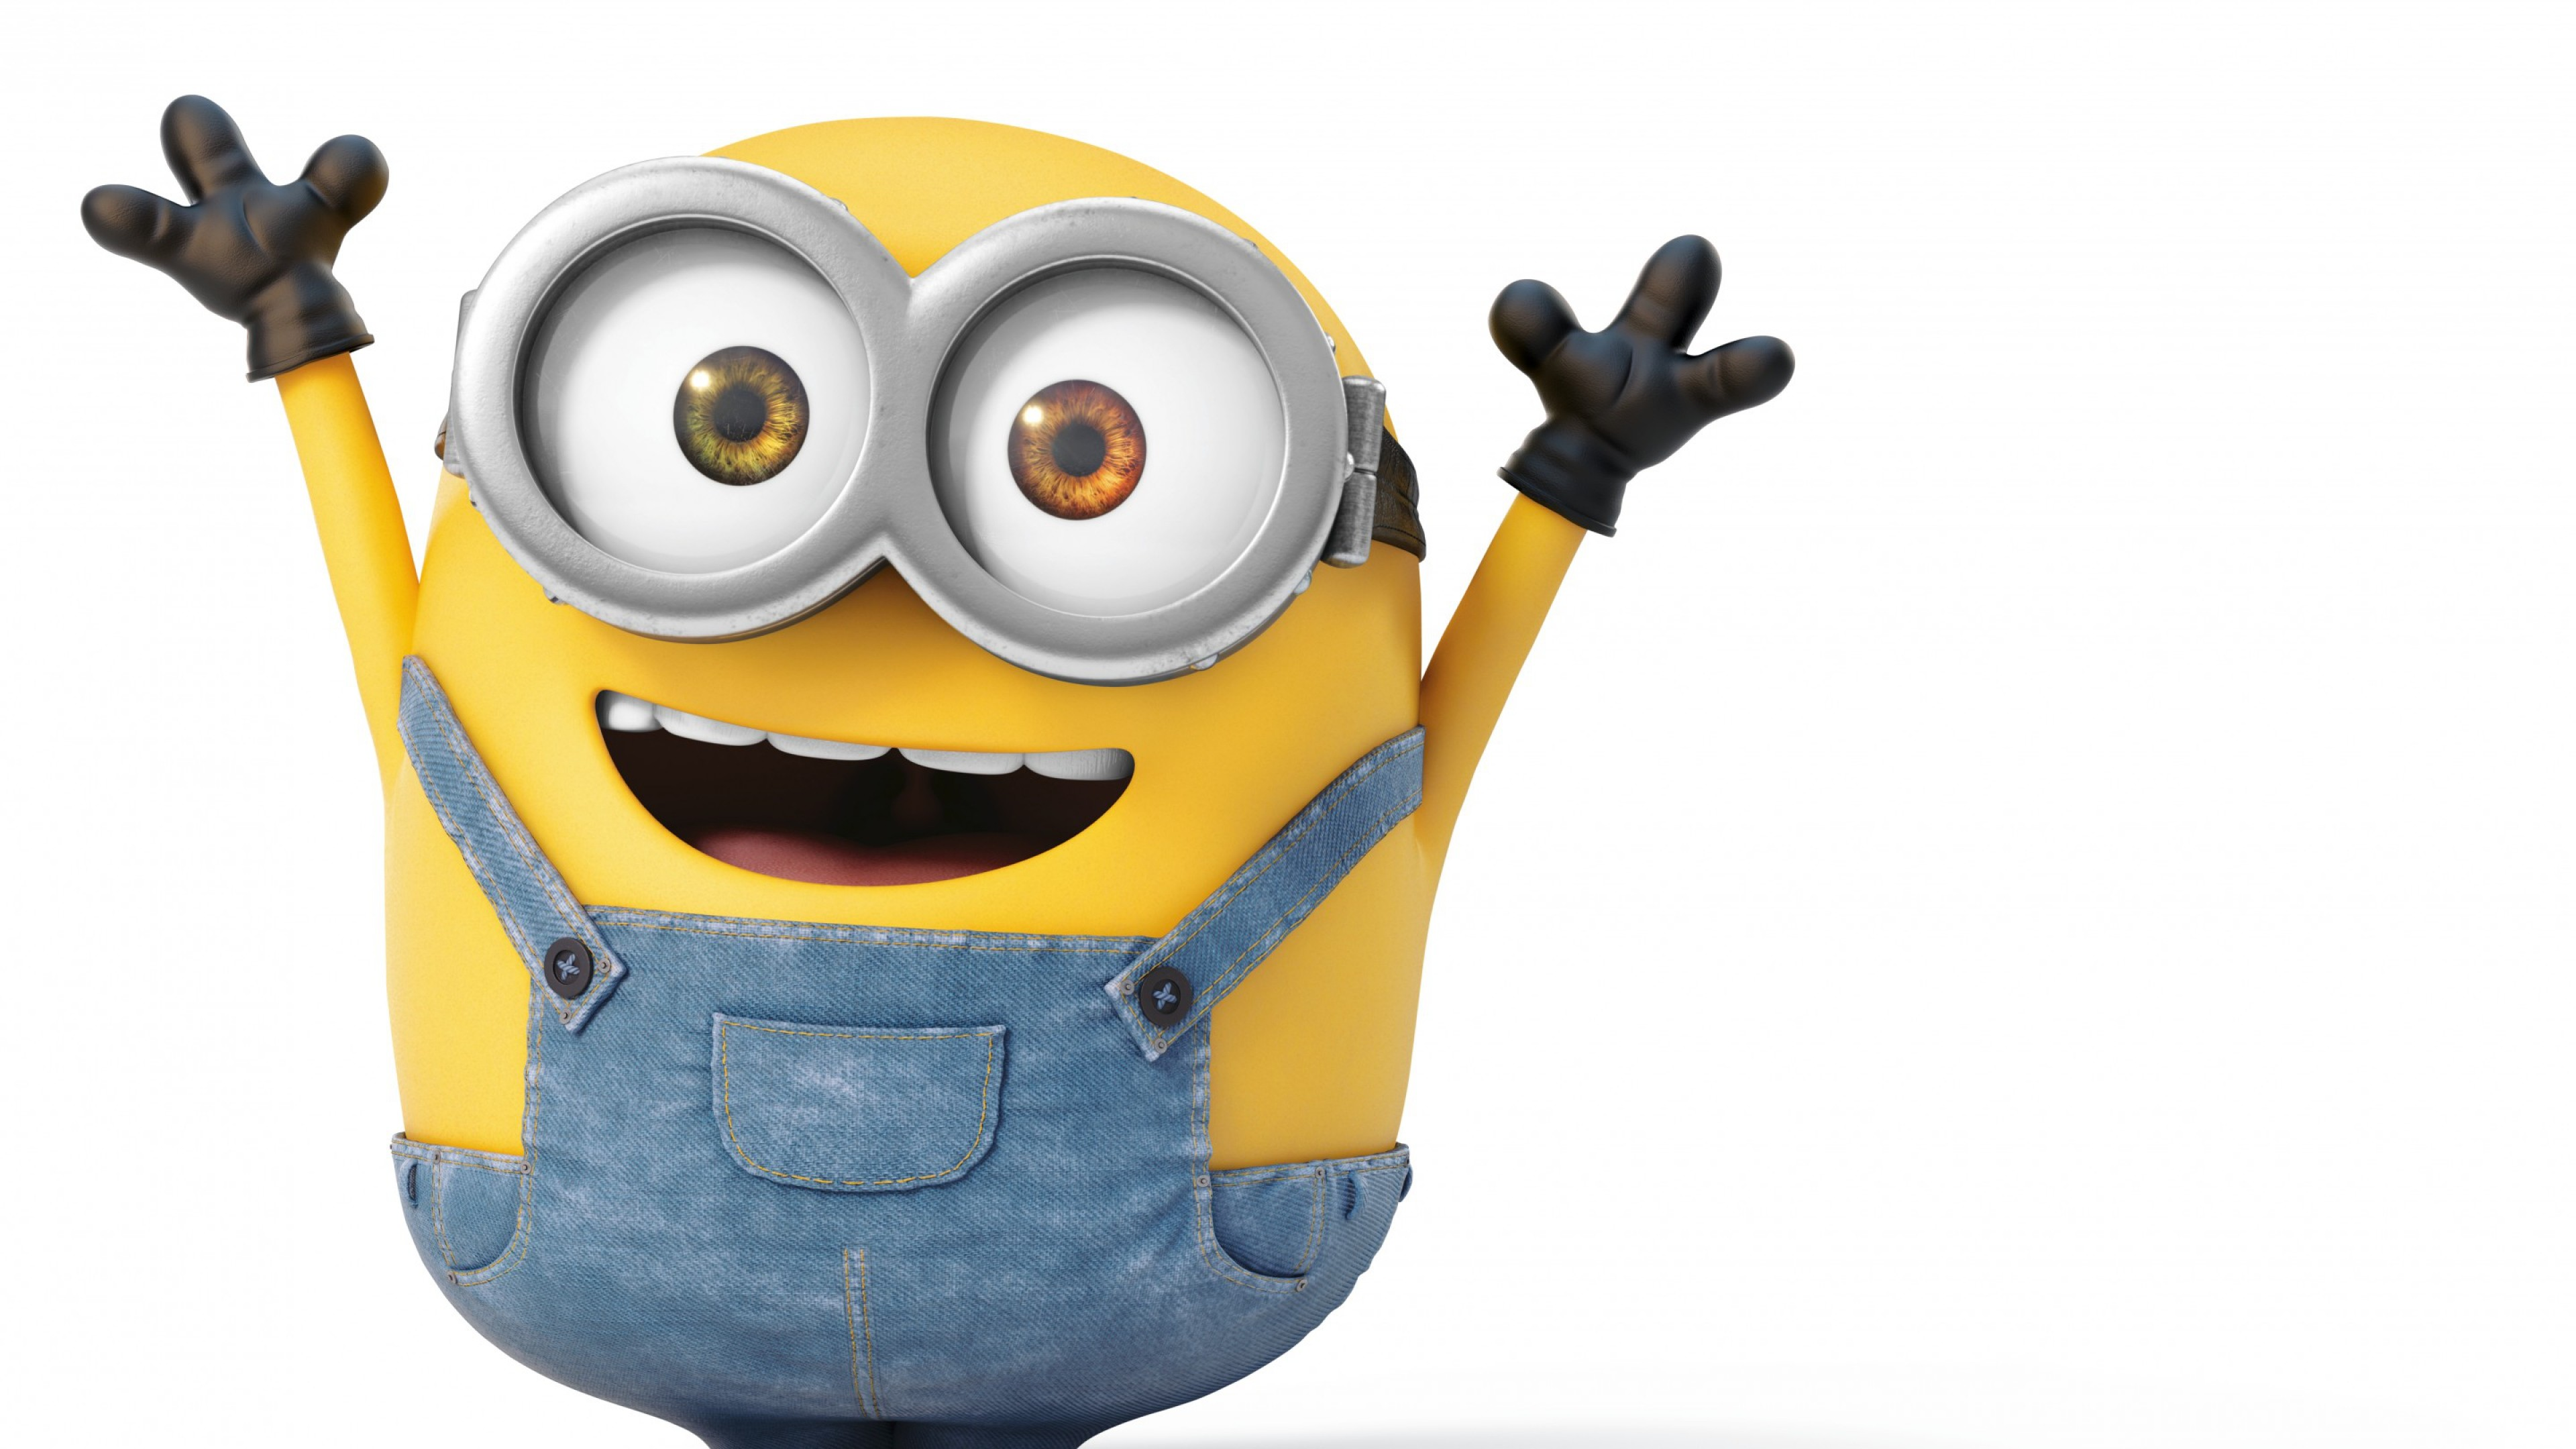 3840x2160 Preview wallpaper minions, bob, joy